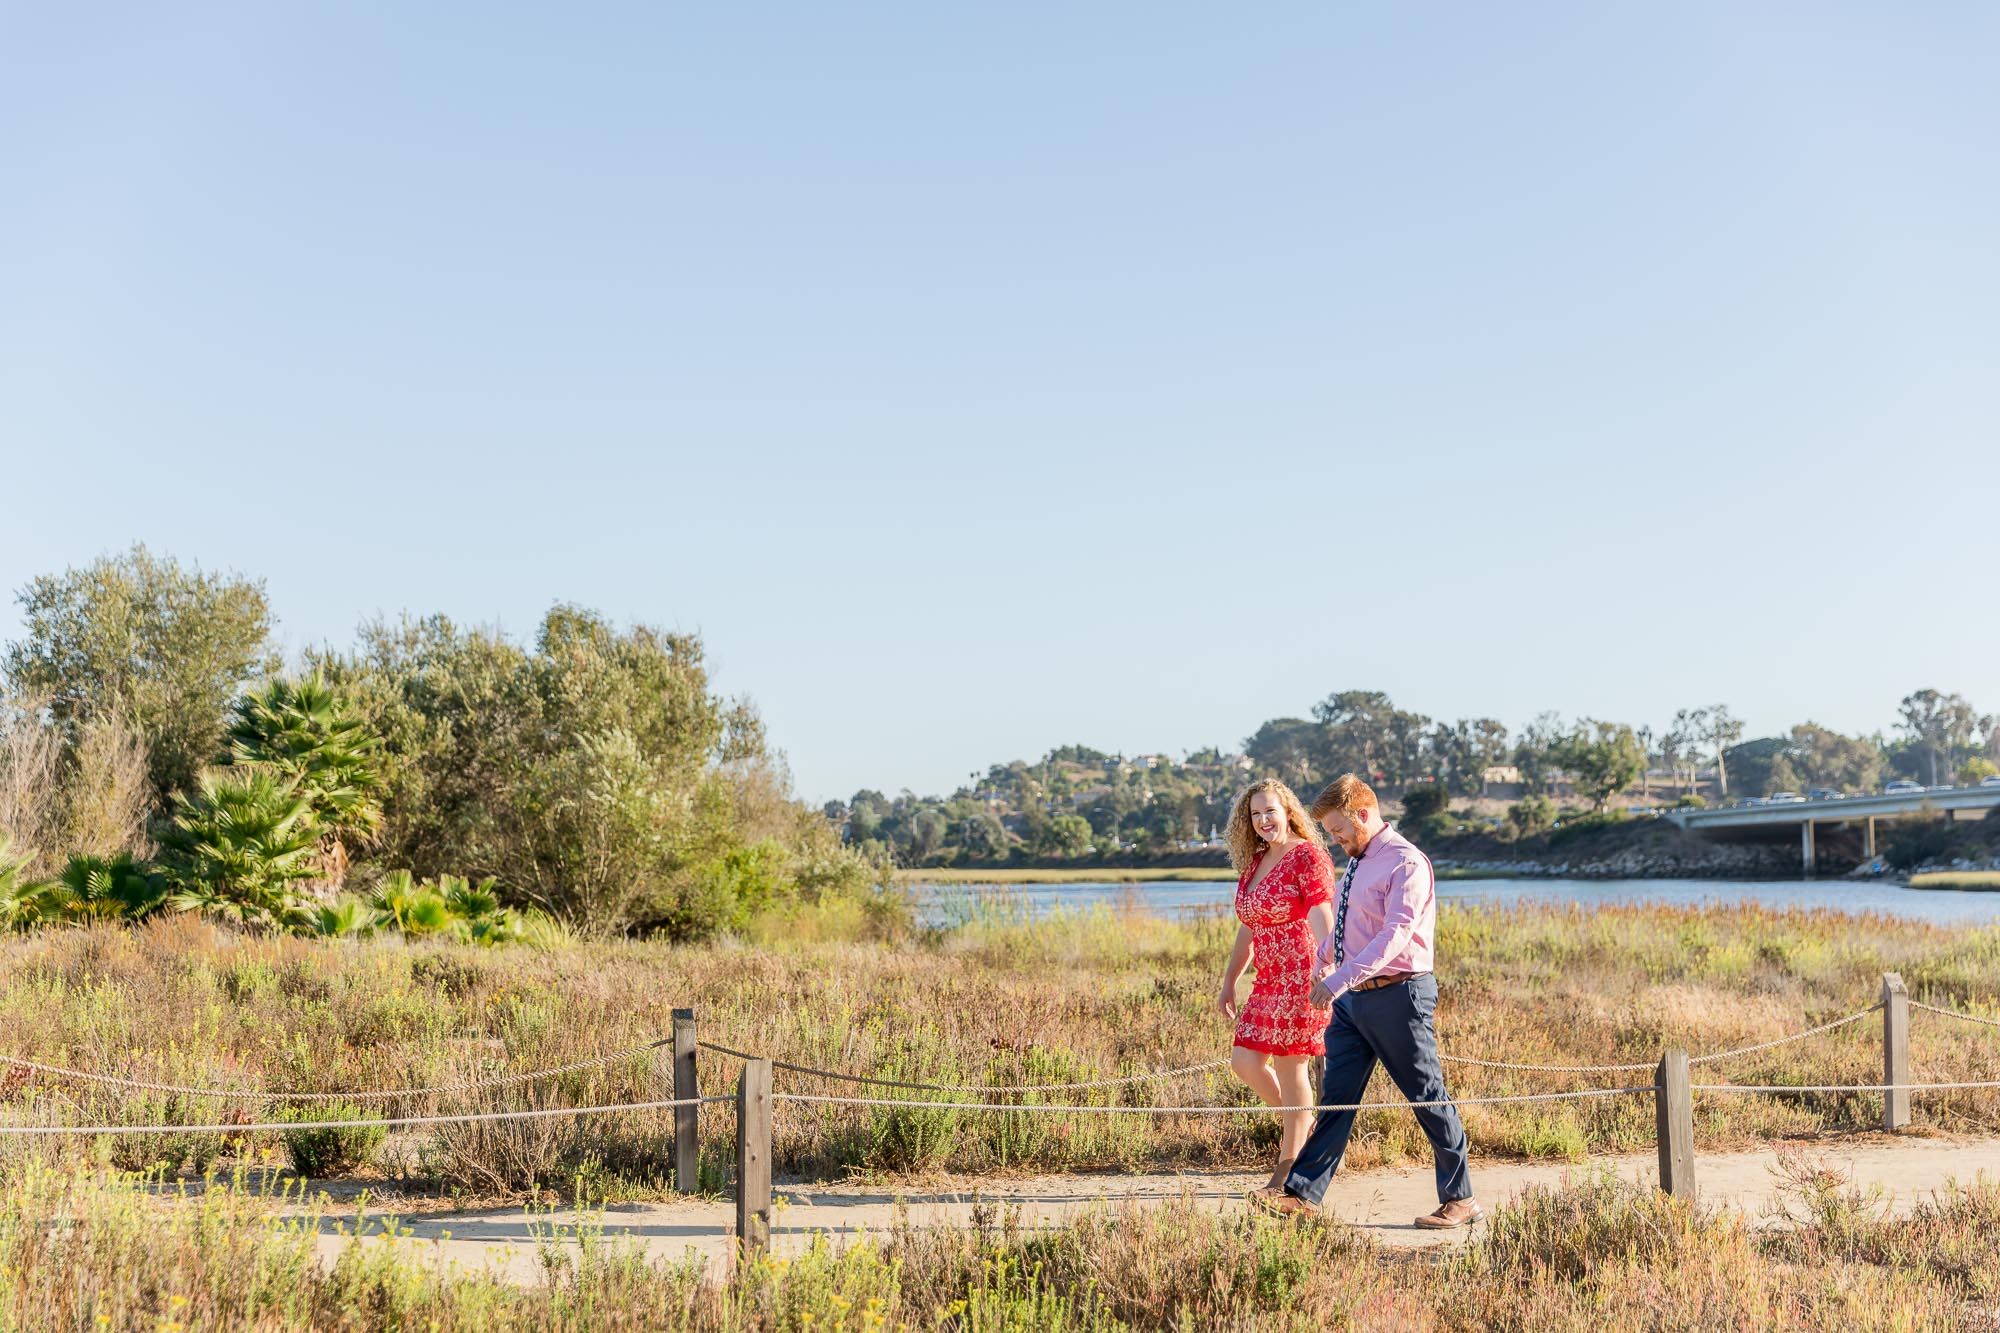 Tierney_Gregory_Batiquitos_Lagoon_Engagement_Session_031.jpg